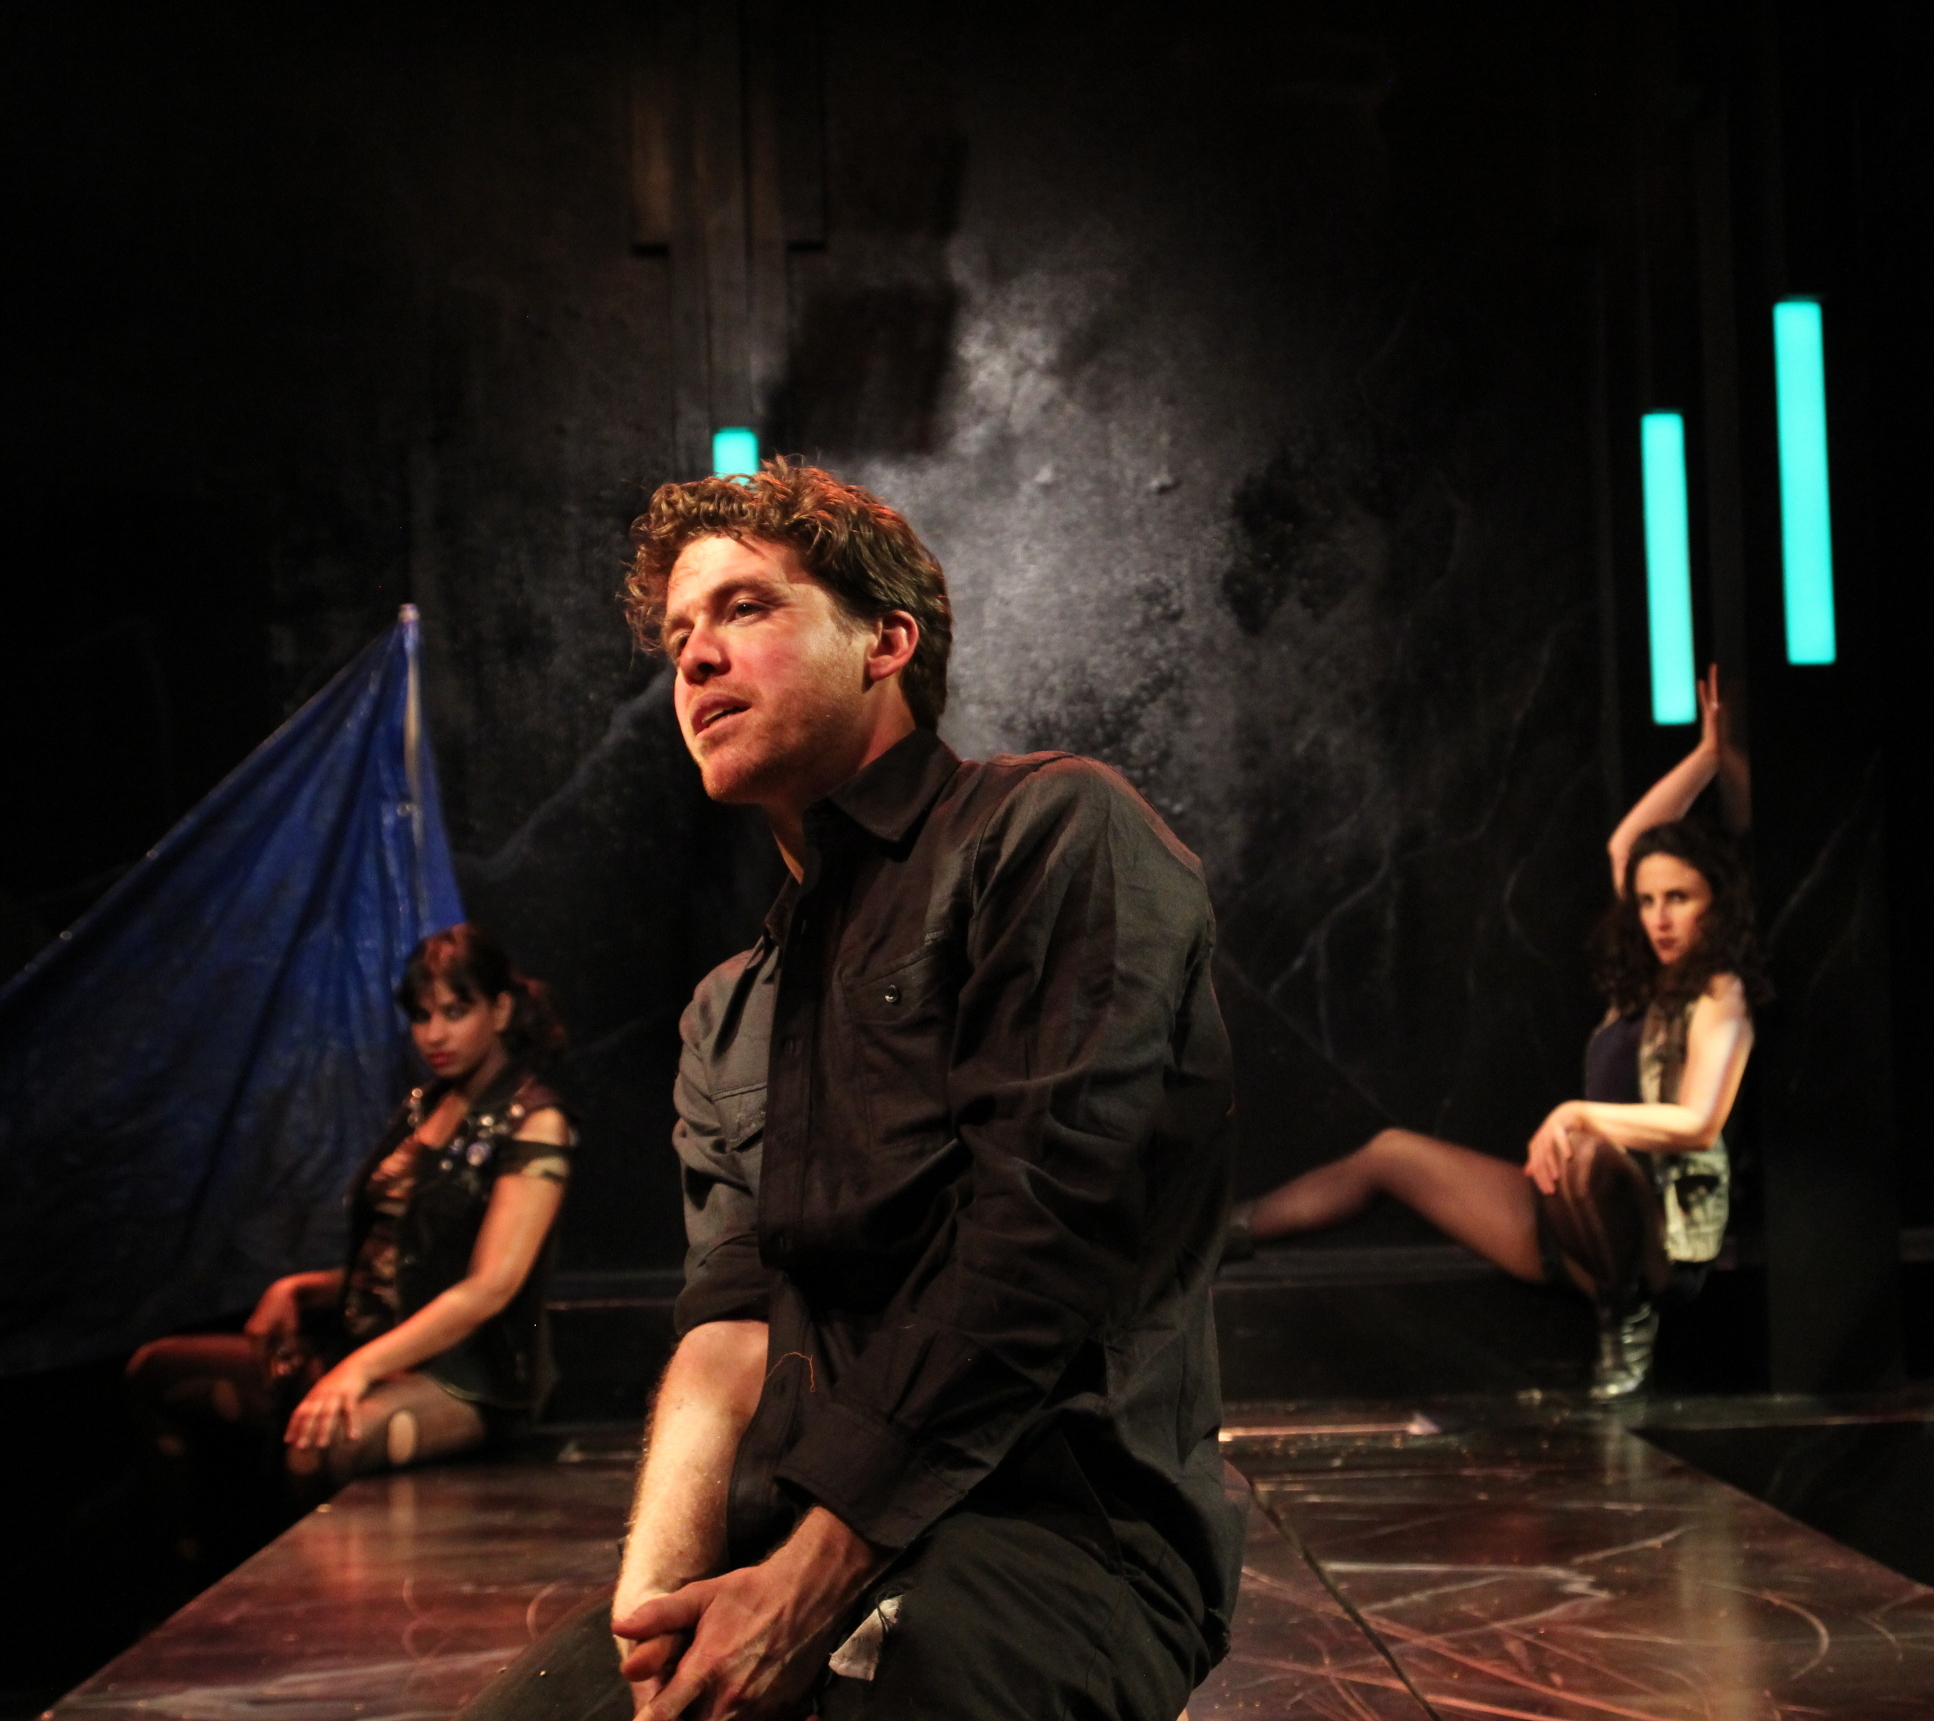 Timon (Brennan Pickman-Thoon, center) laments the power of gold to corrupt while Phynia (Radhika Rao, left) and Timandra (María Ascensión-Leigh, right) look on. Photo by Rob  Melrose